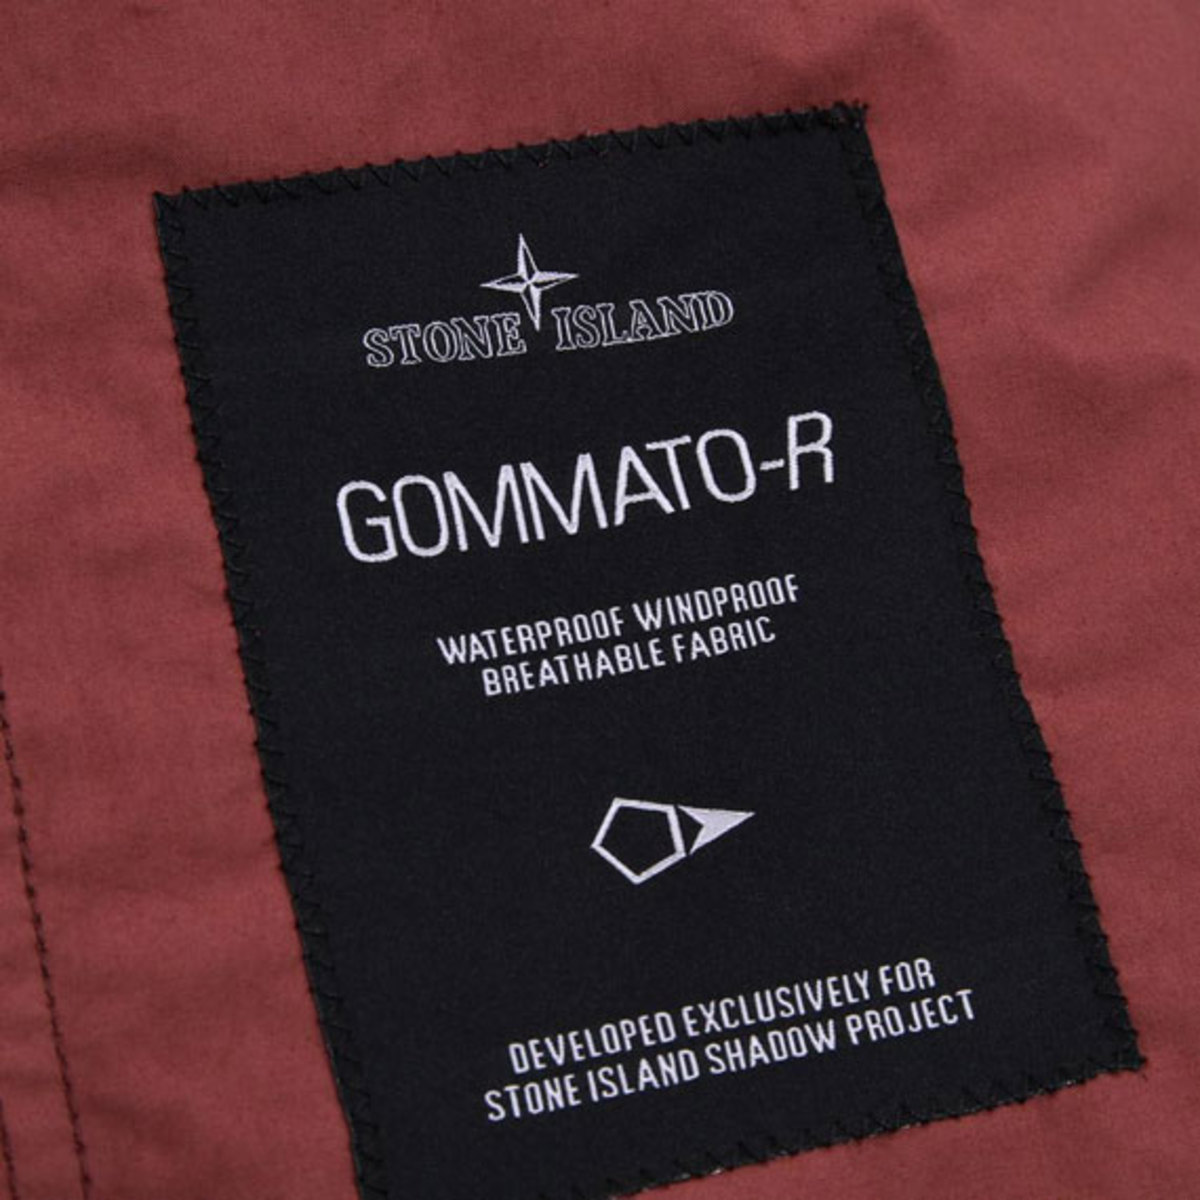 stone-island-shadow-project-gommato-r-bomber-jacket-11